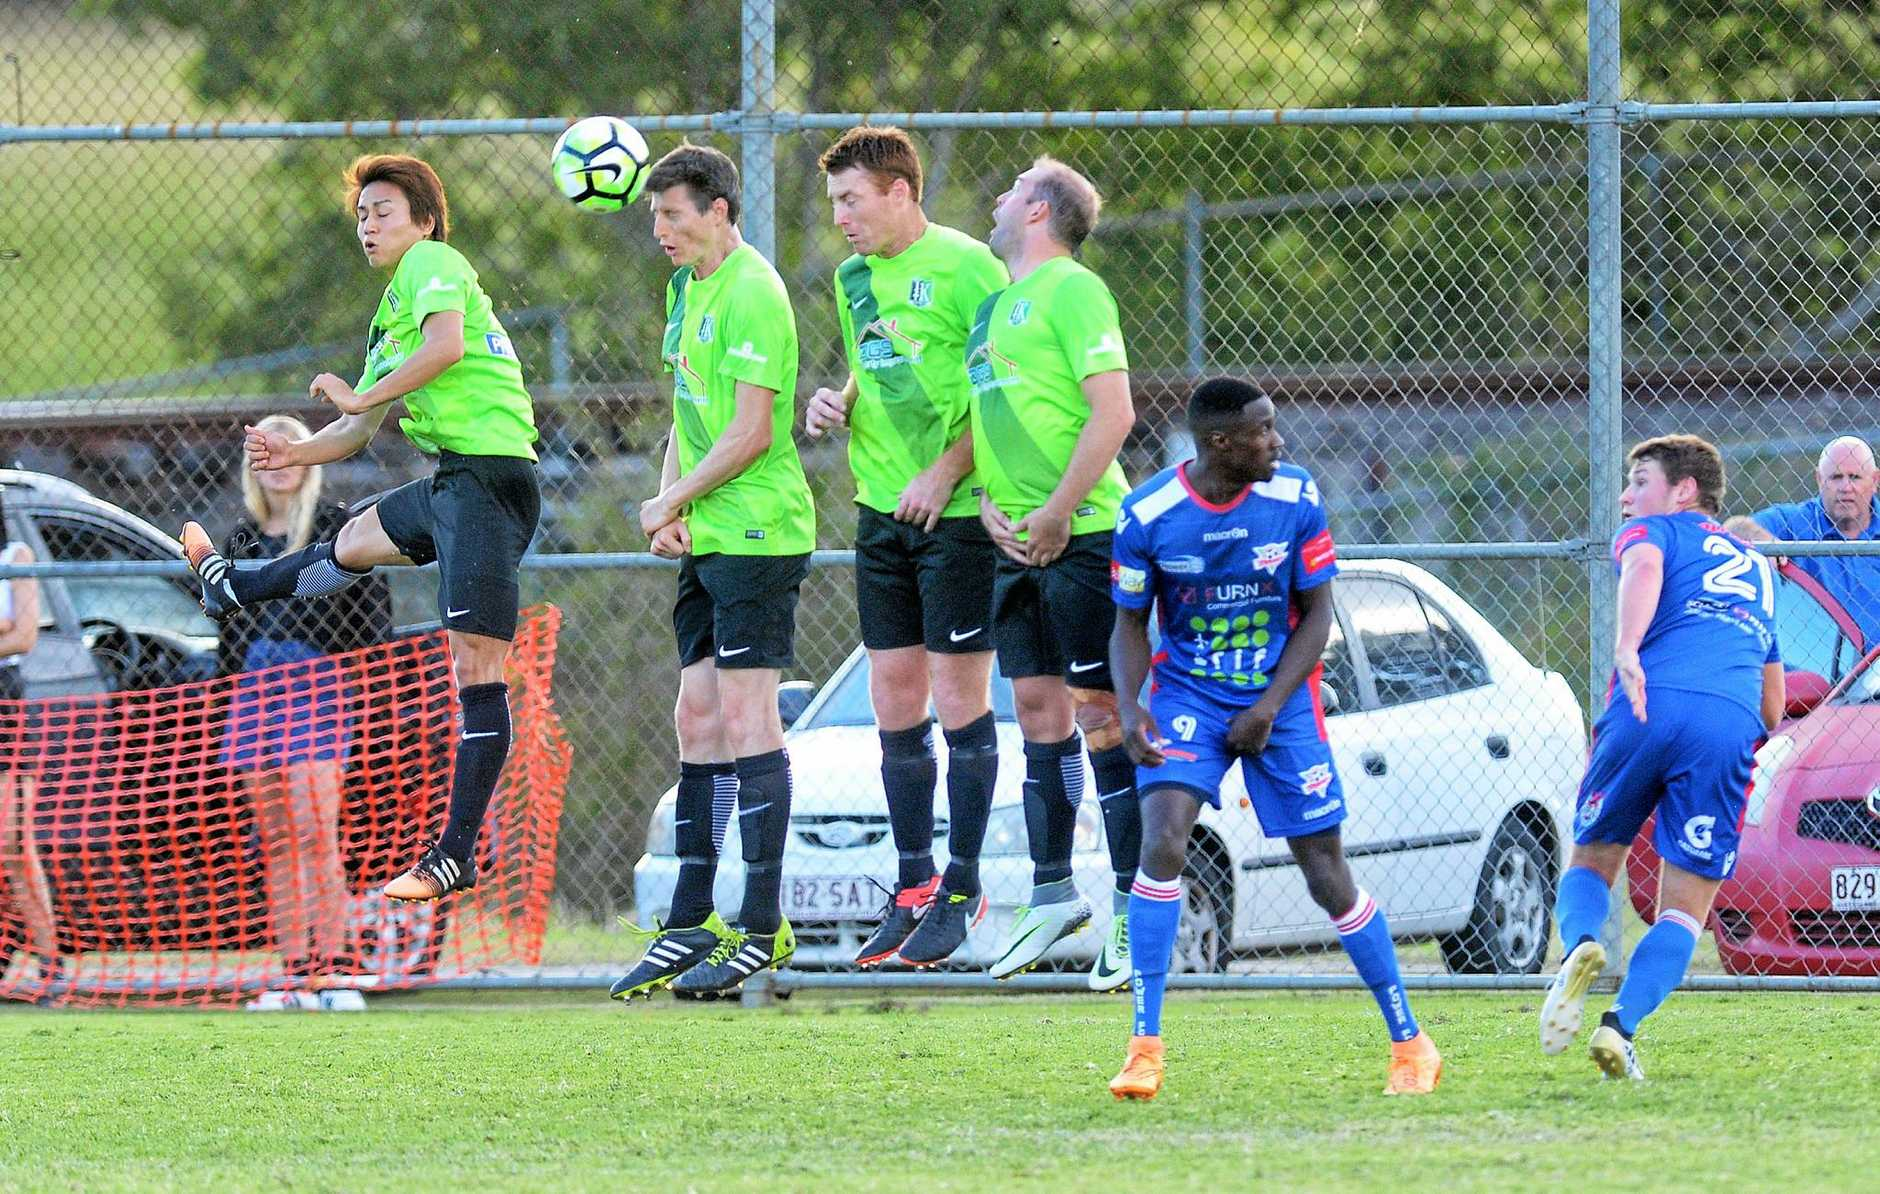 The Ipswich Knights defence rises as one to block a free kick during today's Brisbane Premier League match against Peninsula Power at Bundamba.